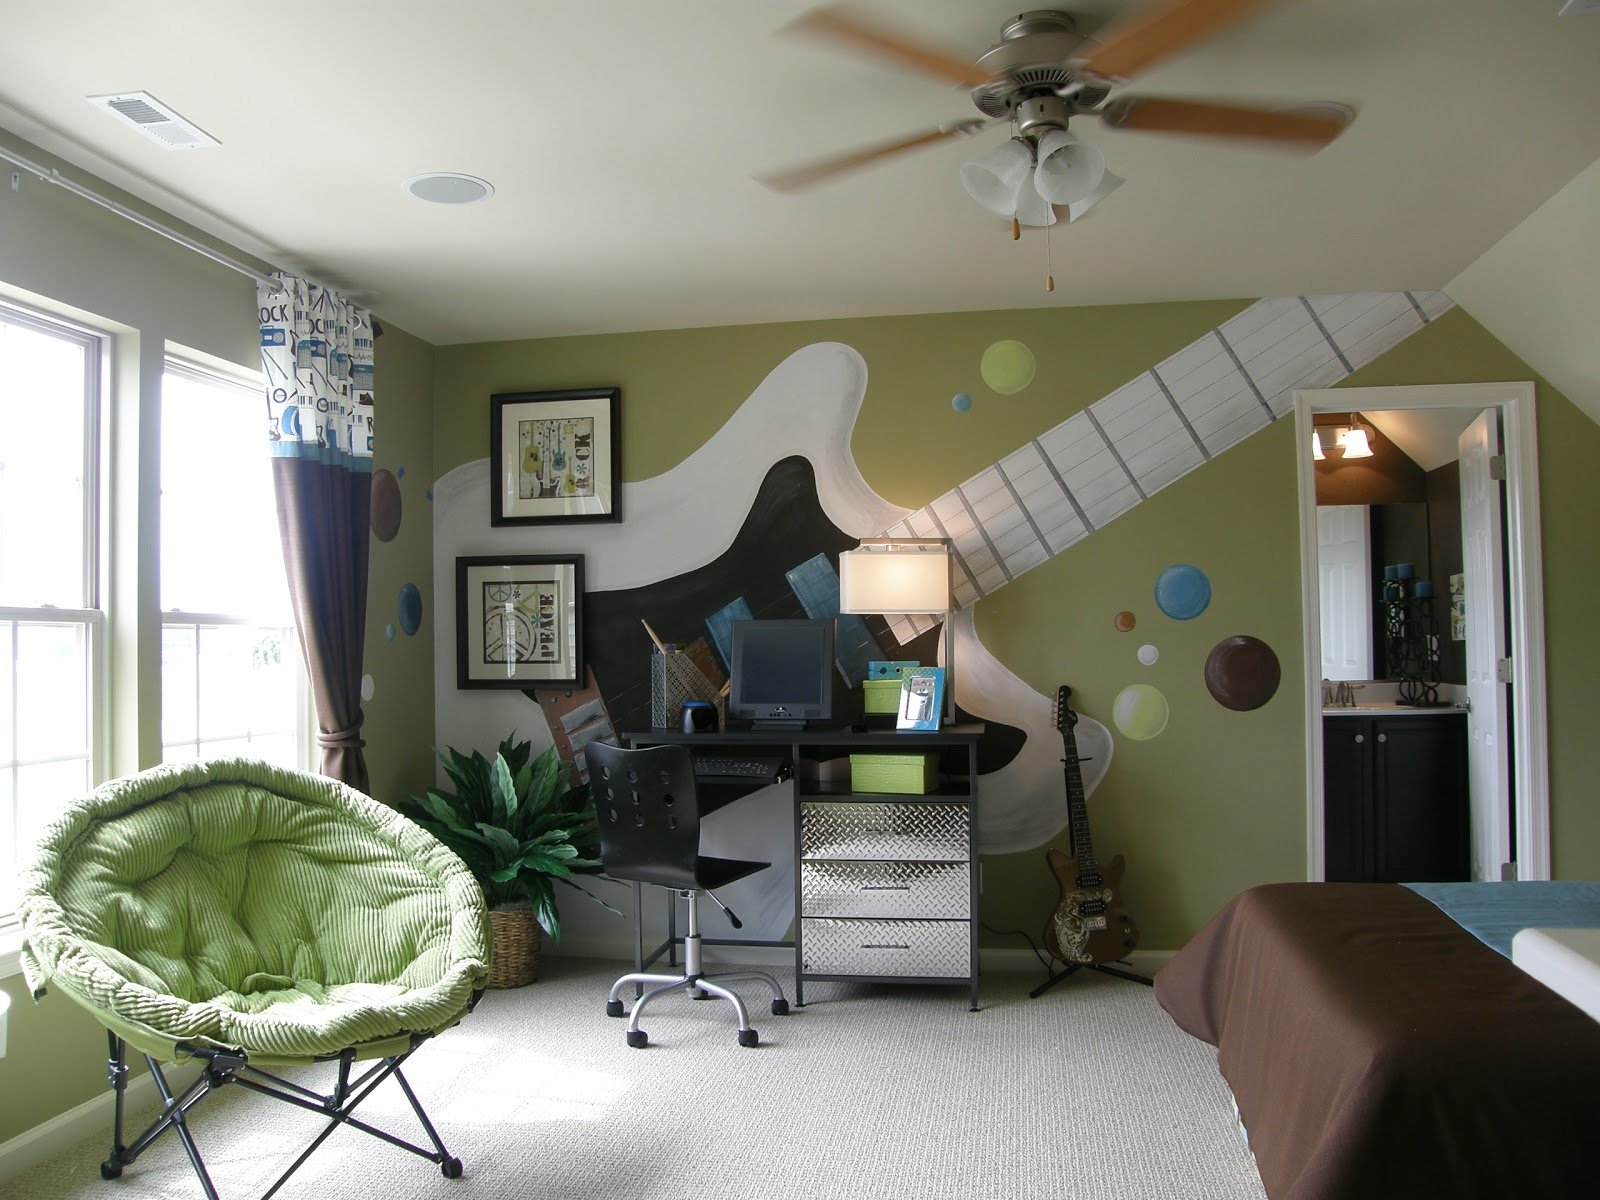 Jam session teen bedroom design dazzle - Cool teen boy bedroom ideas ...